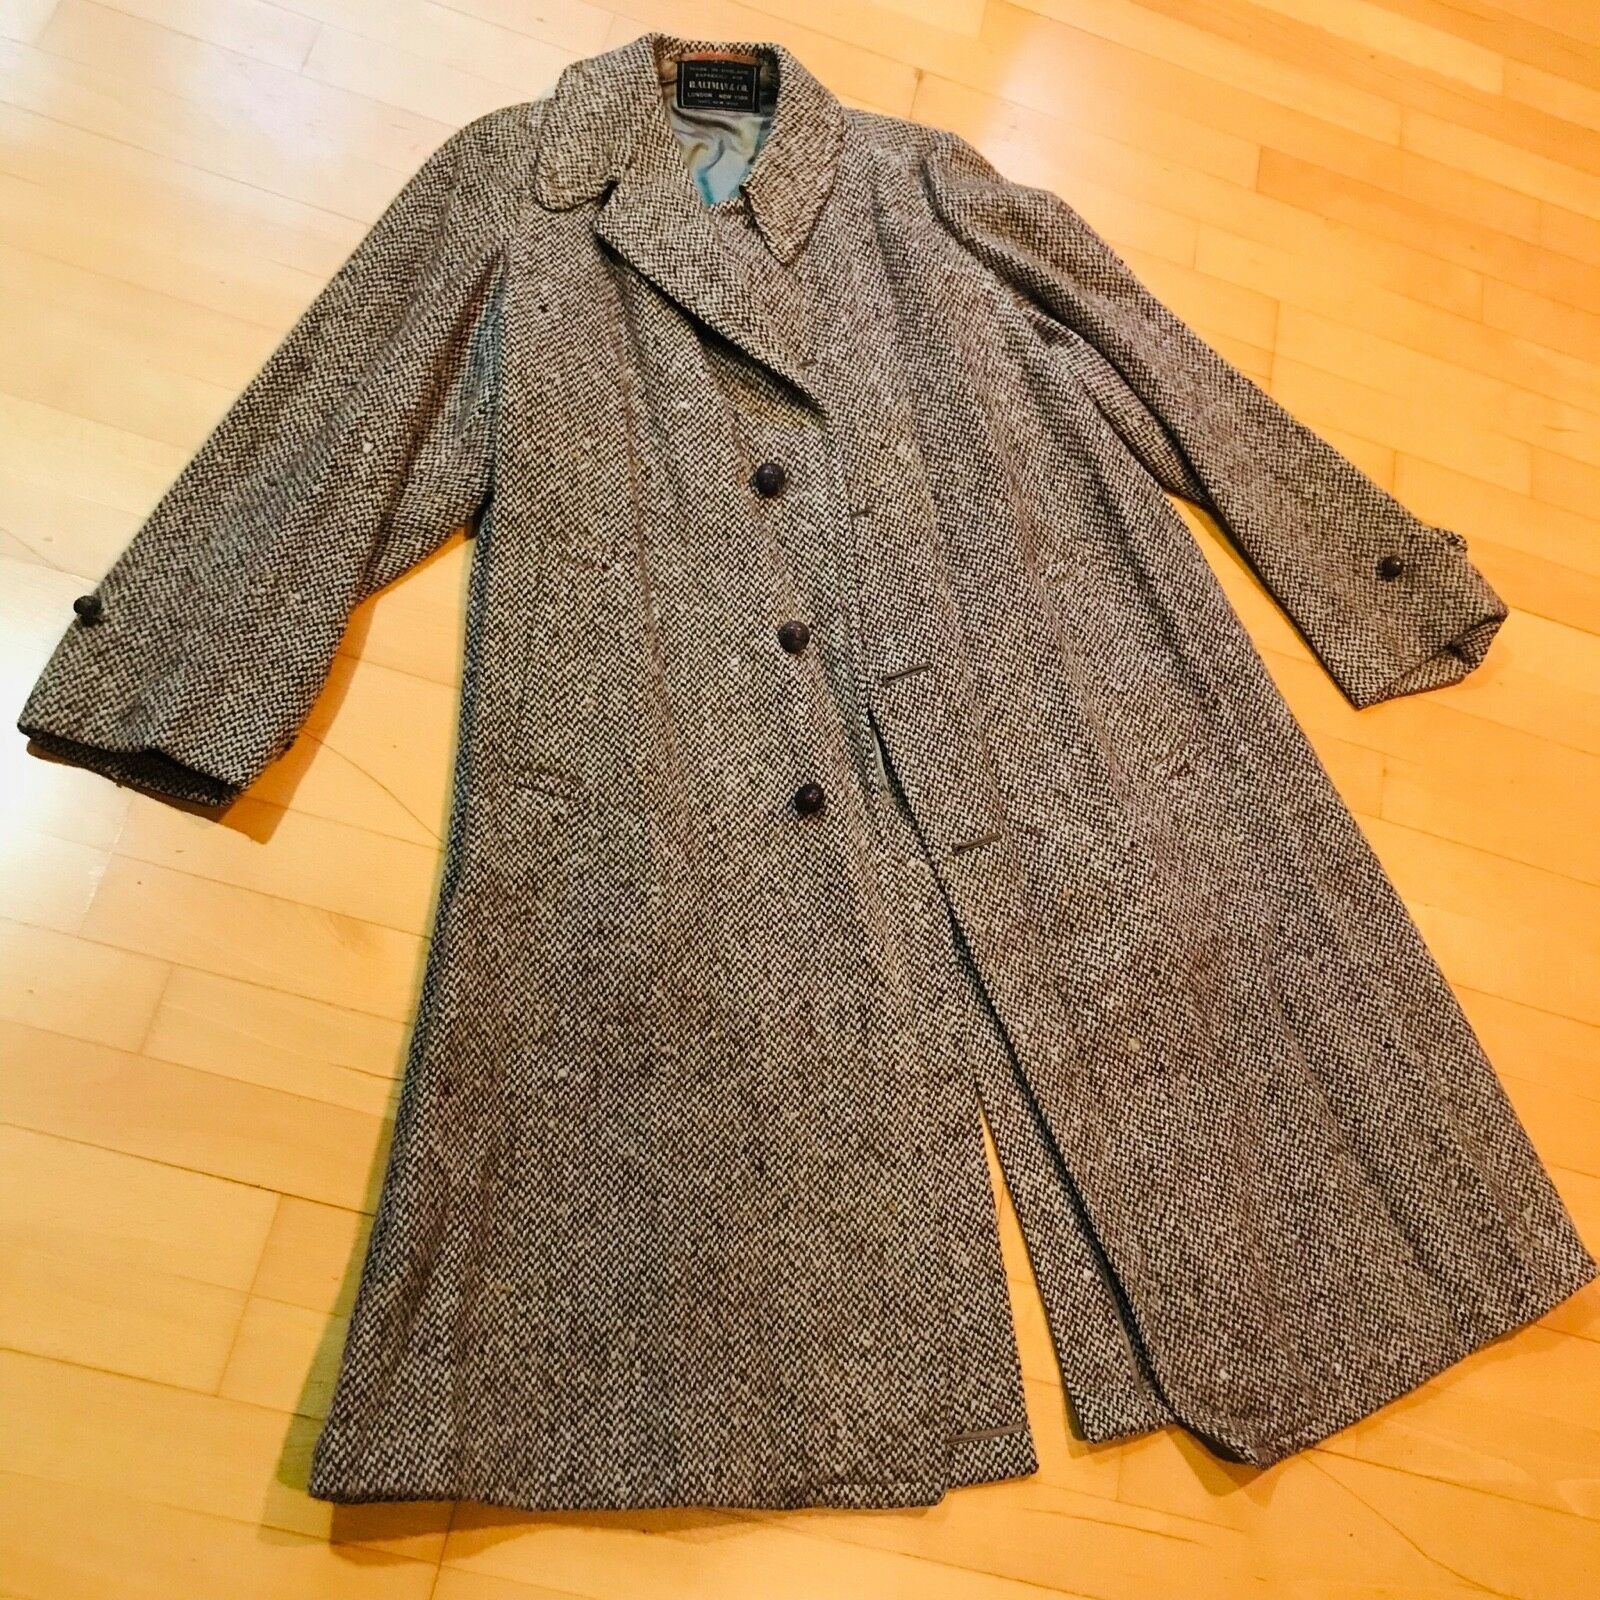 Baltman & Co. Coat 100% Wool Made in England Full Length Winter Coat Grau Tweed